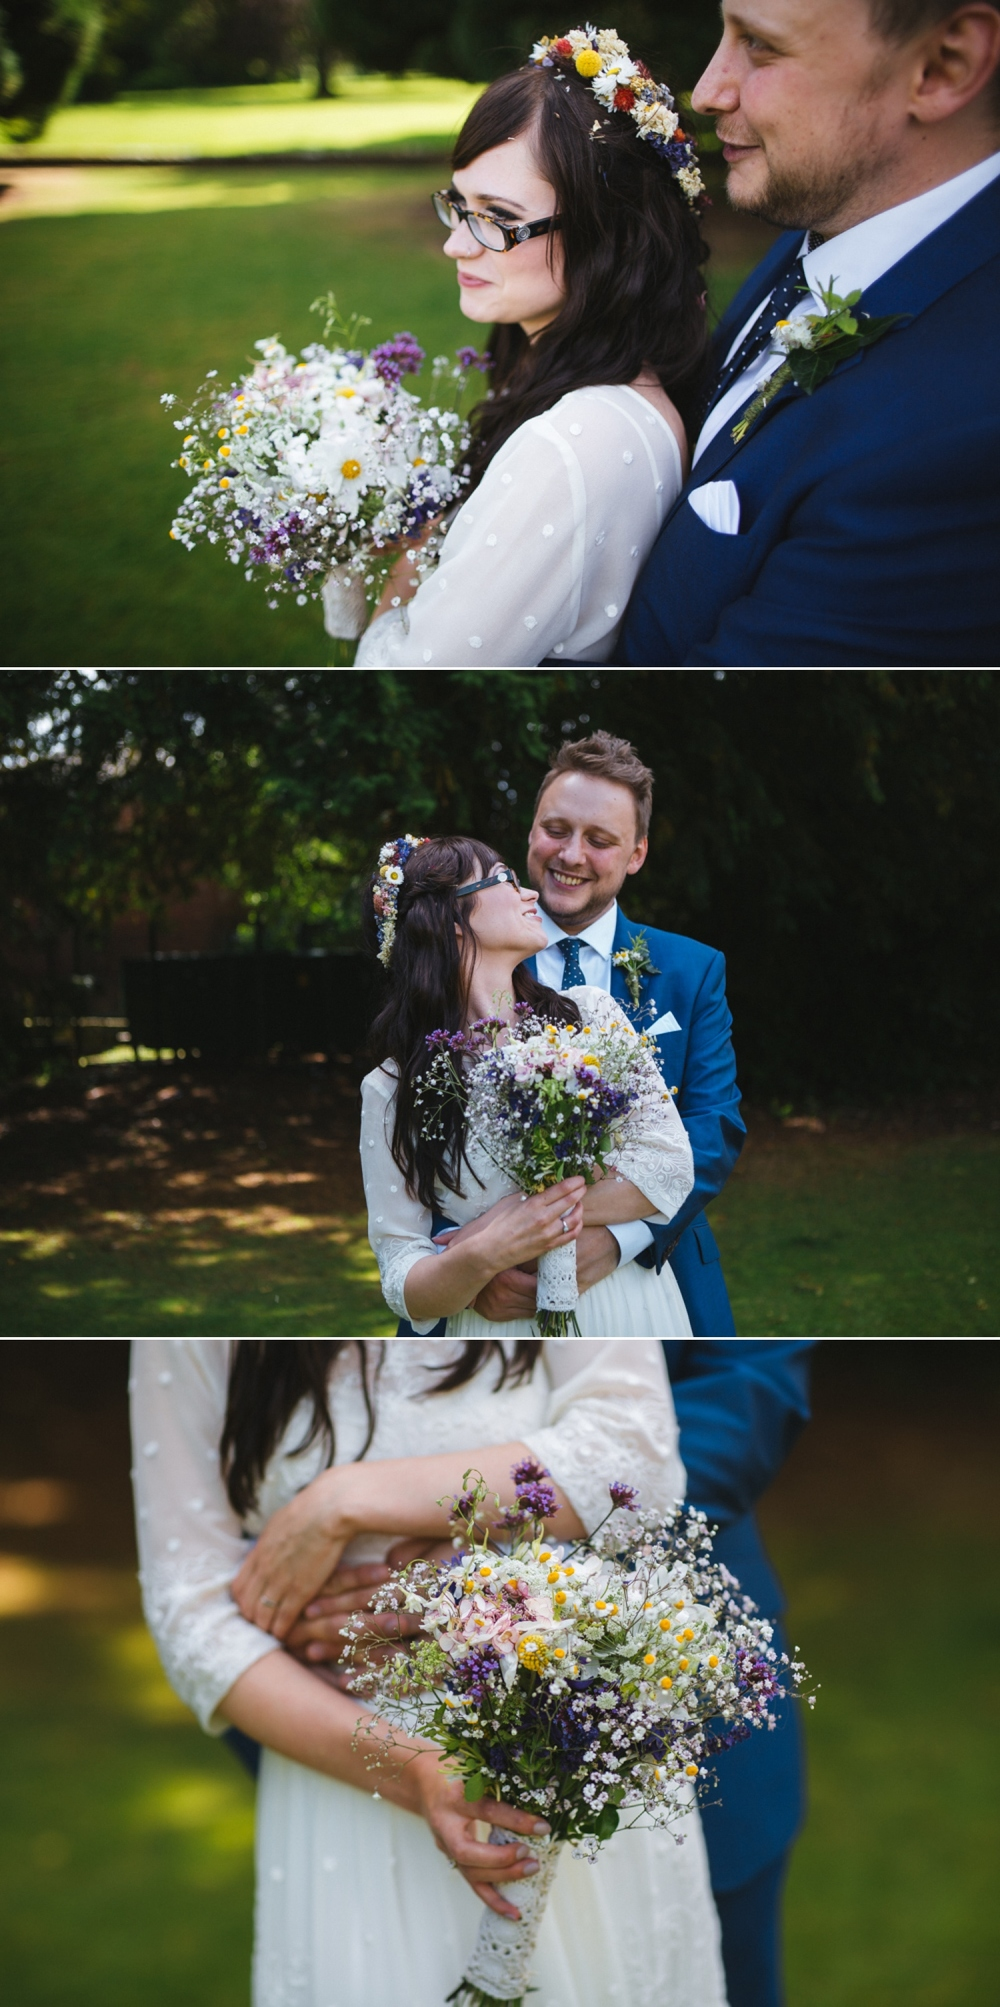 Somerset Wedding Photographer Elly & Liam_0020.jpg